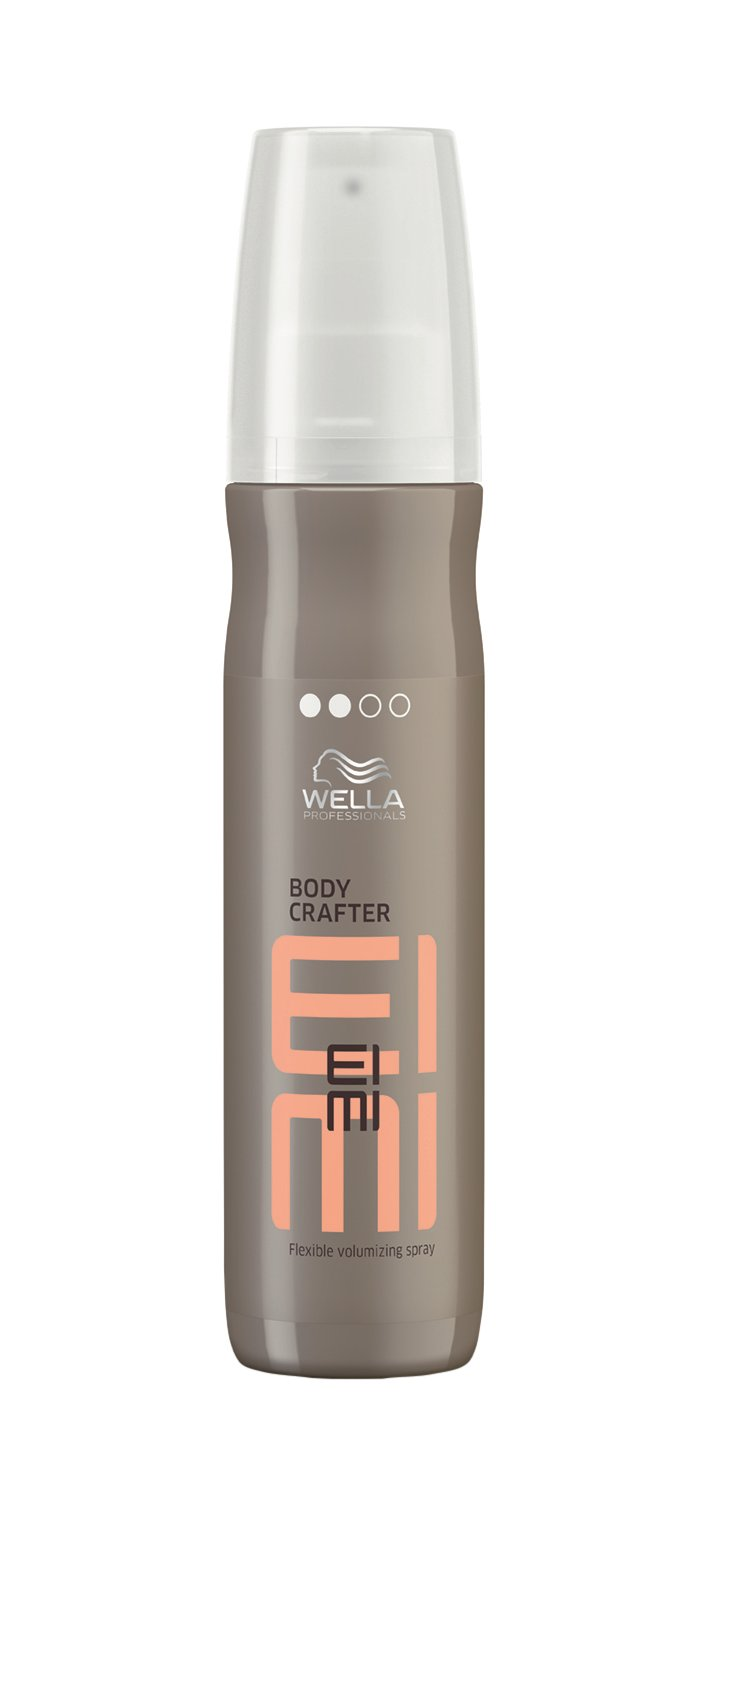 Wella  EIMI Body Crafter makes it easy to create workable texture and volume with hold and control.